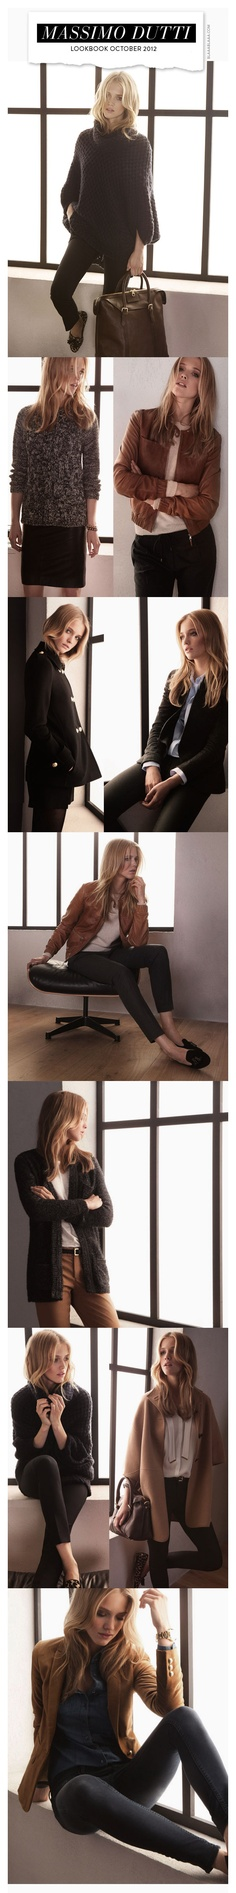 Massimo Dutti Lookbook October 2012